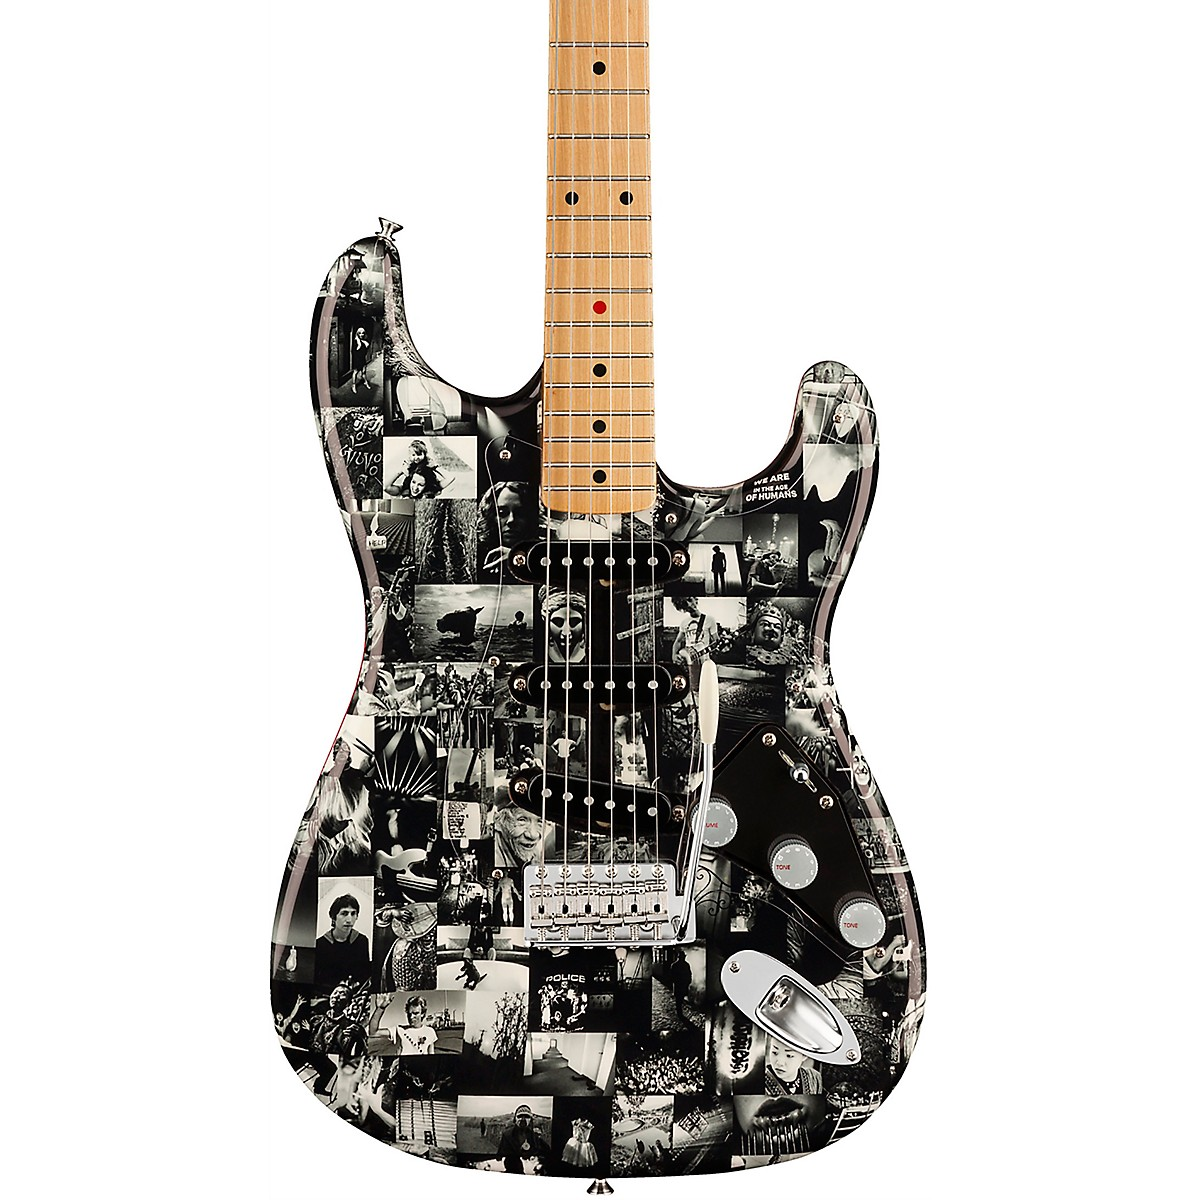 Fender Custom Shop Andy Summers Monochrome Stratocaster Electric Guitar Master Built by Dennis Galuszka